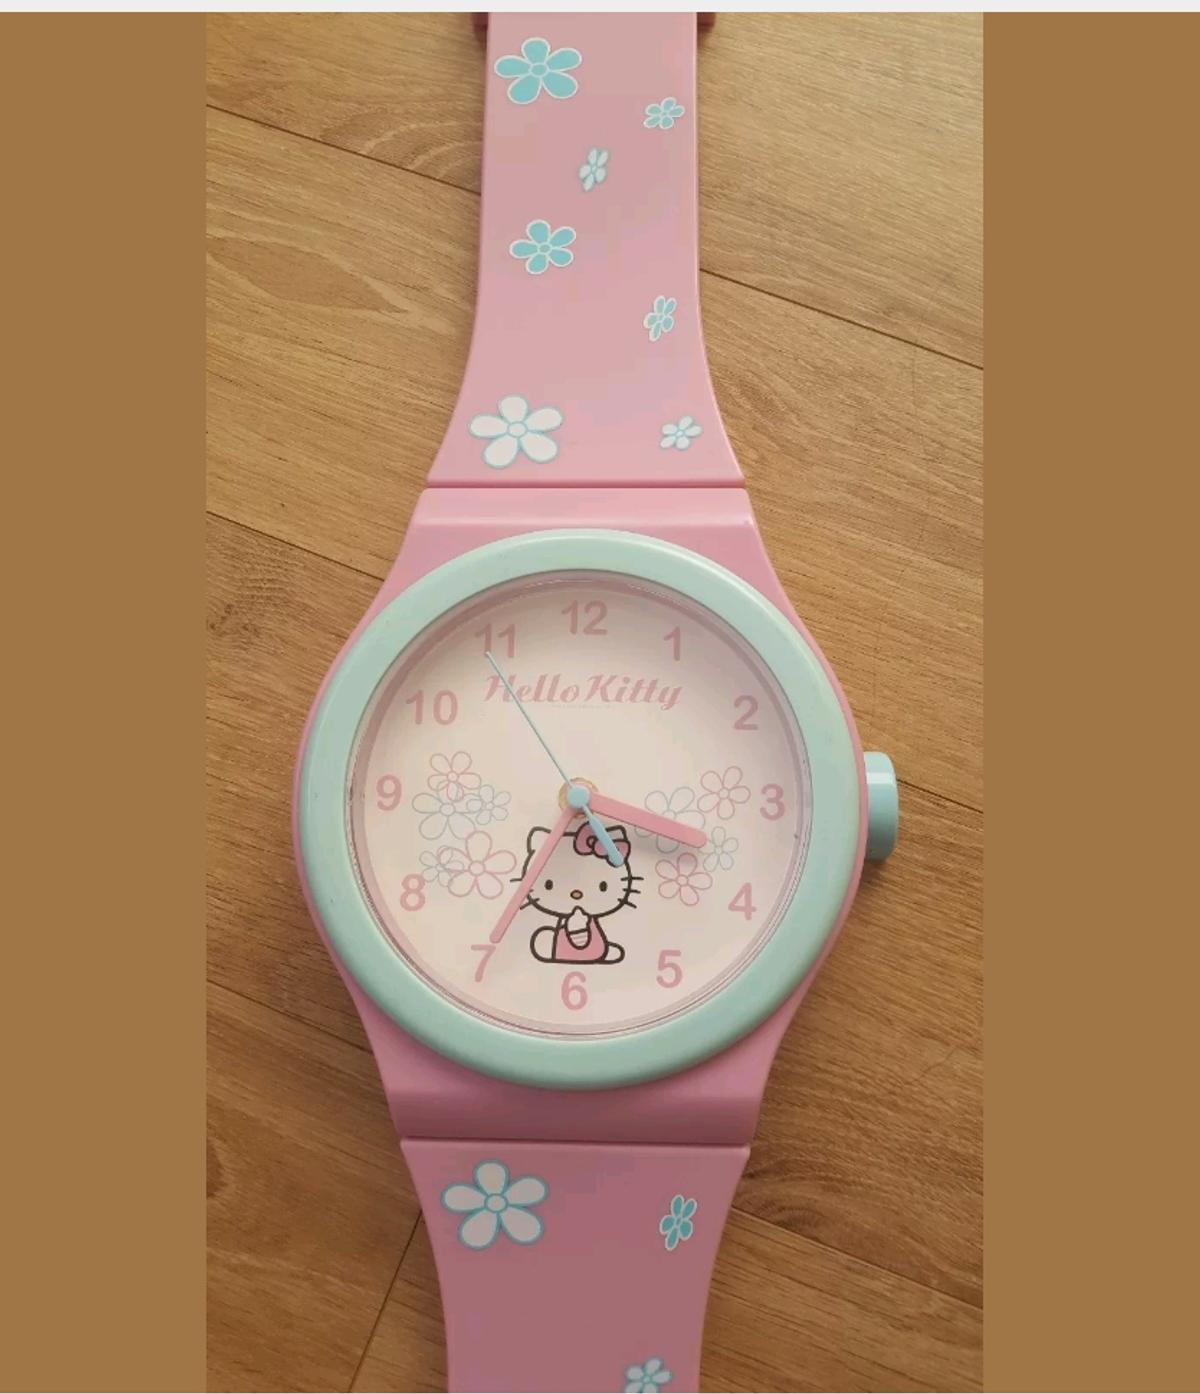 Hello Kitty Wall Clock In West Lancashire For 5 00 For Sale Shpock